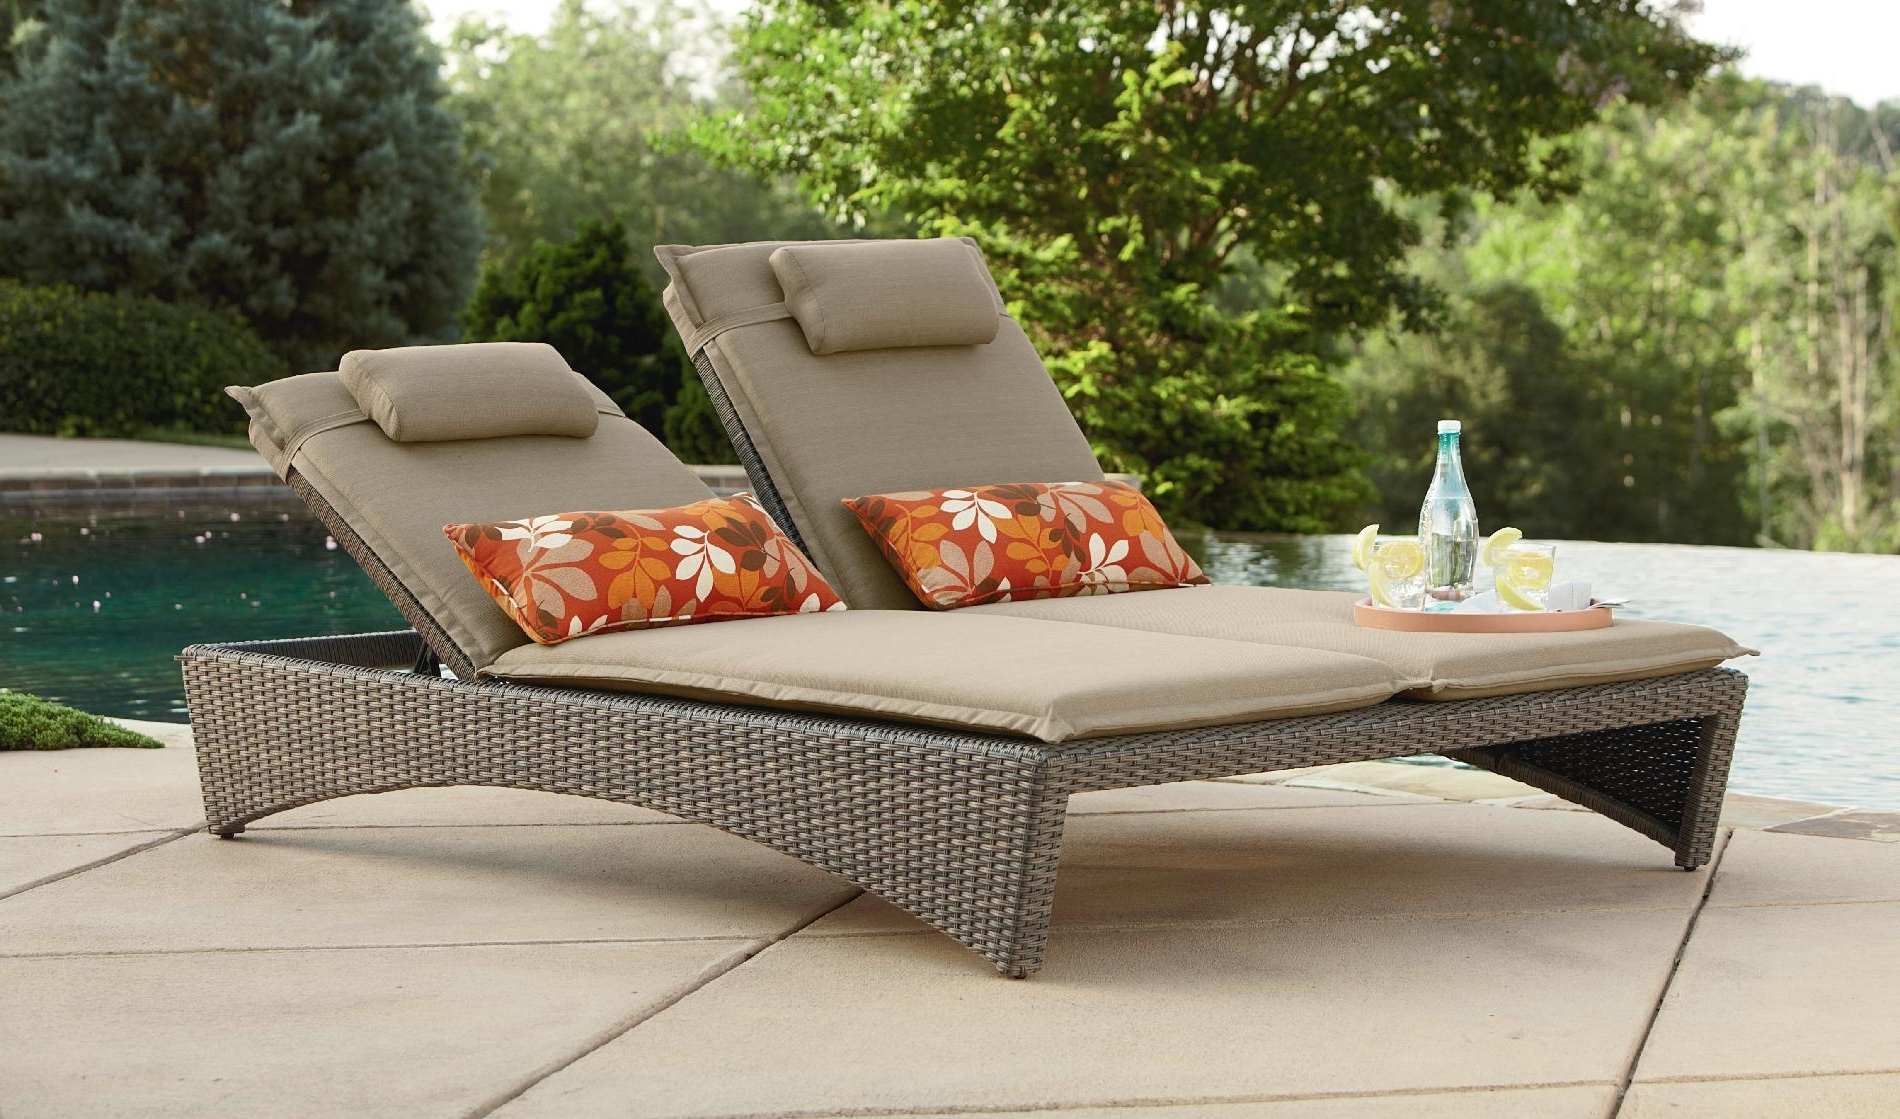 Best Pool Chaise Lounge Chairs — Bed And Shower : Decorating Pool In Famous Chaise Lounge Lawn Chairs (View 10 of 15)